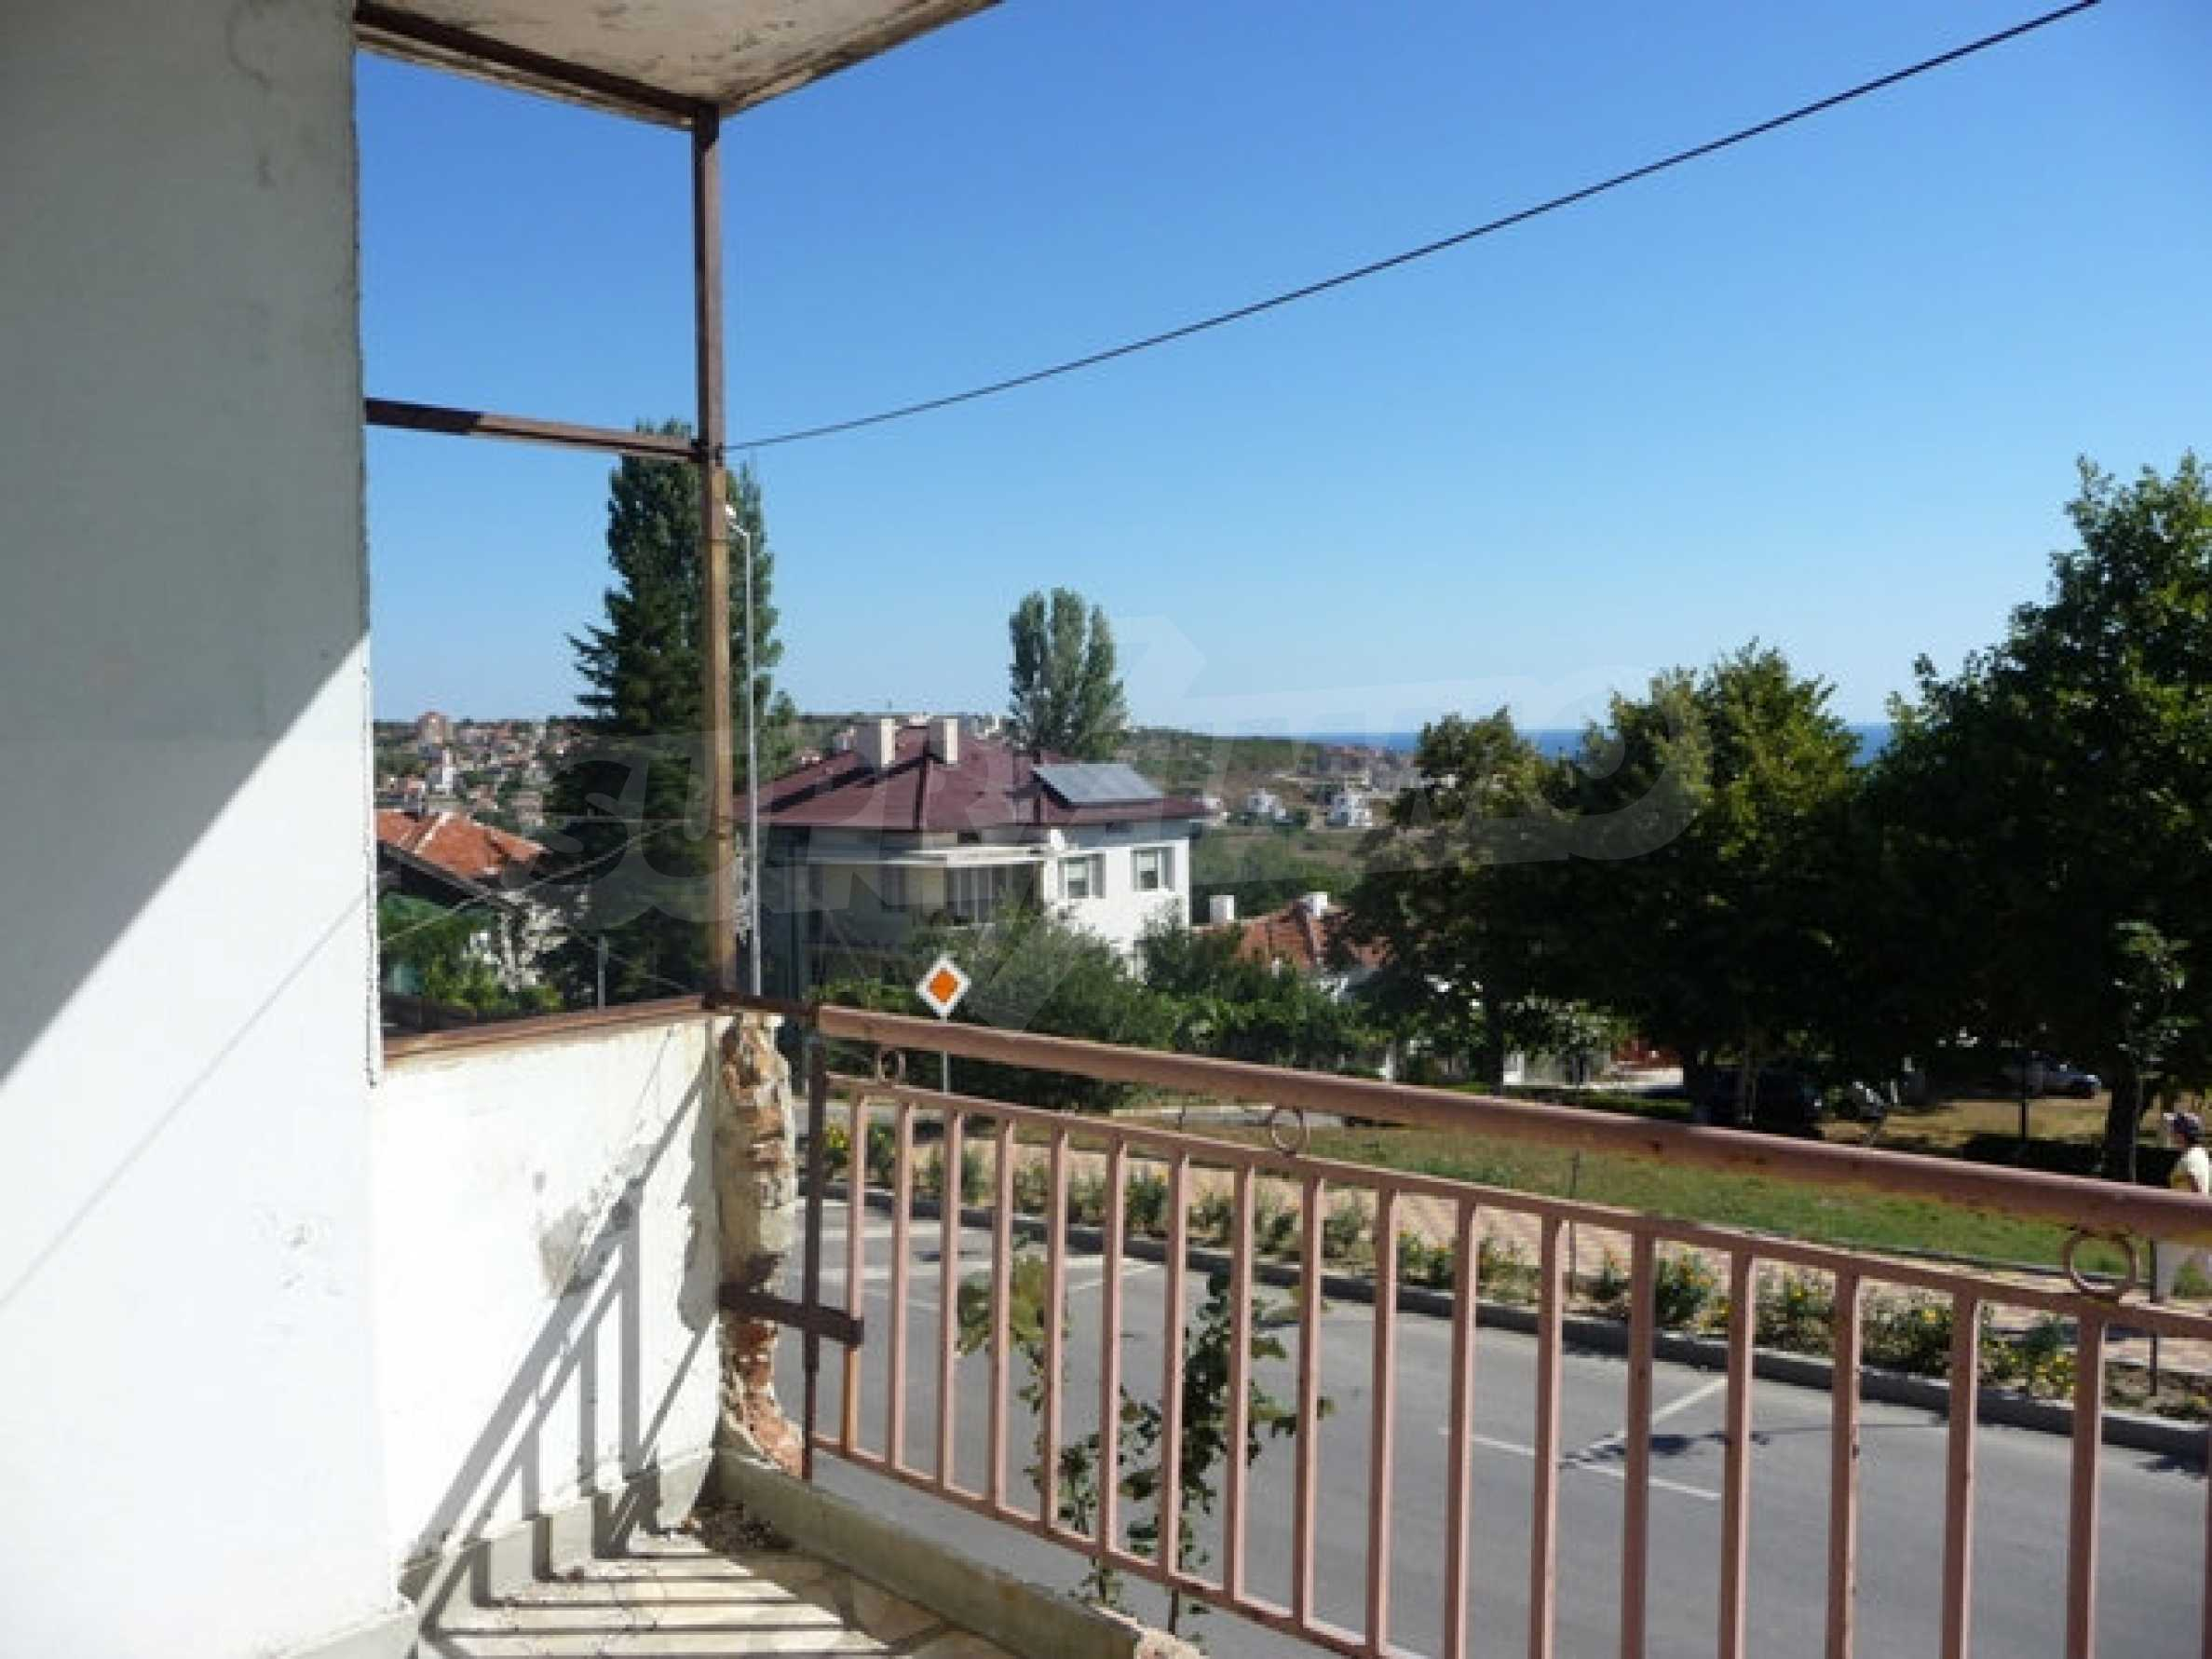 House with shop in Byala (Varna) 13